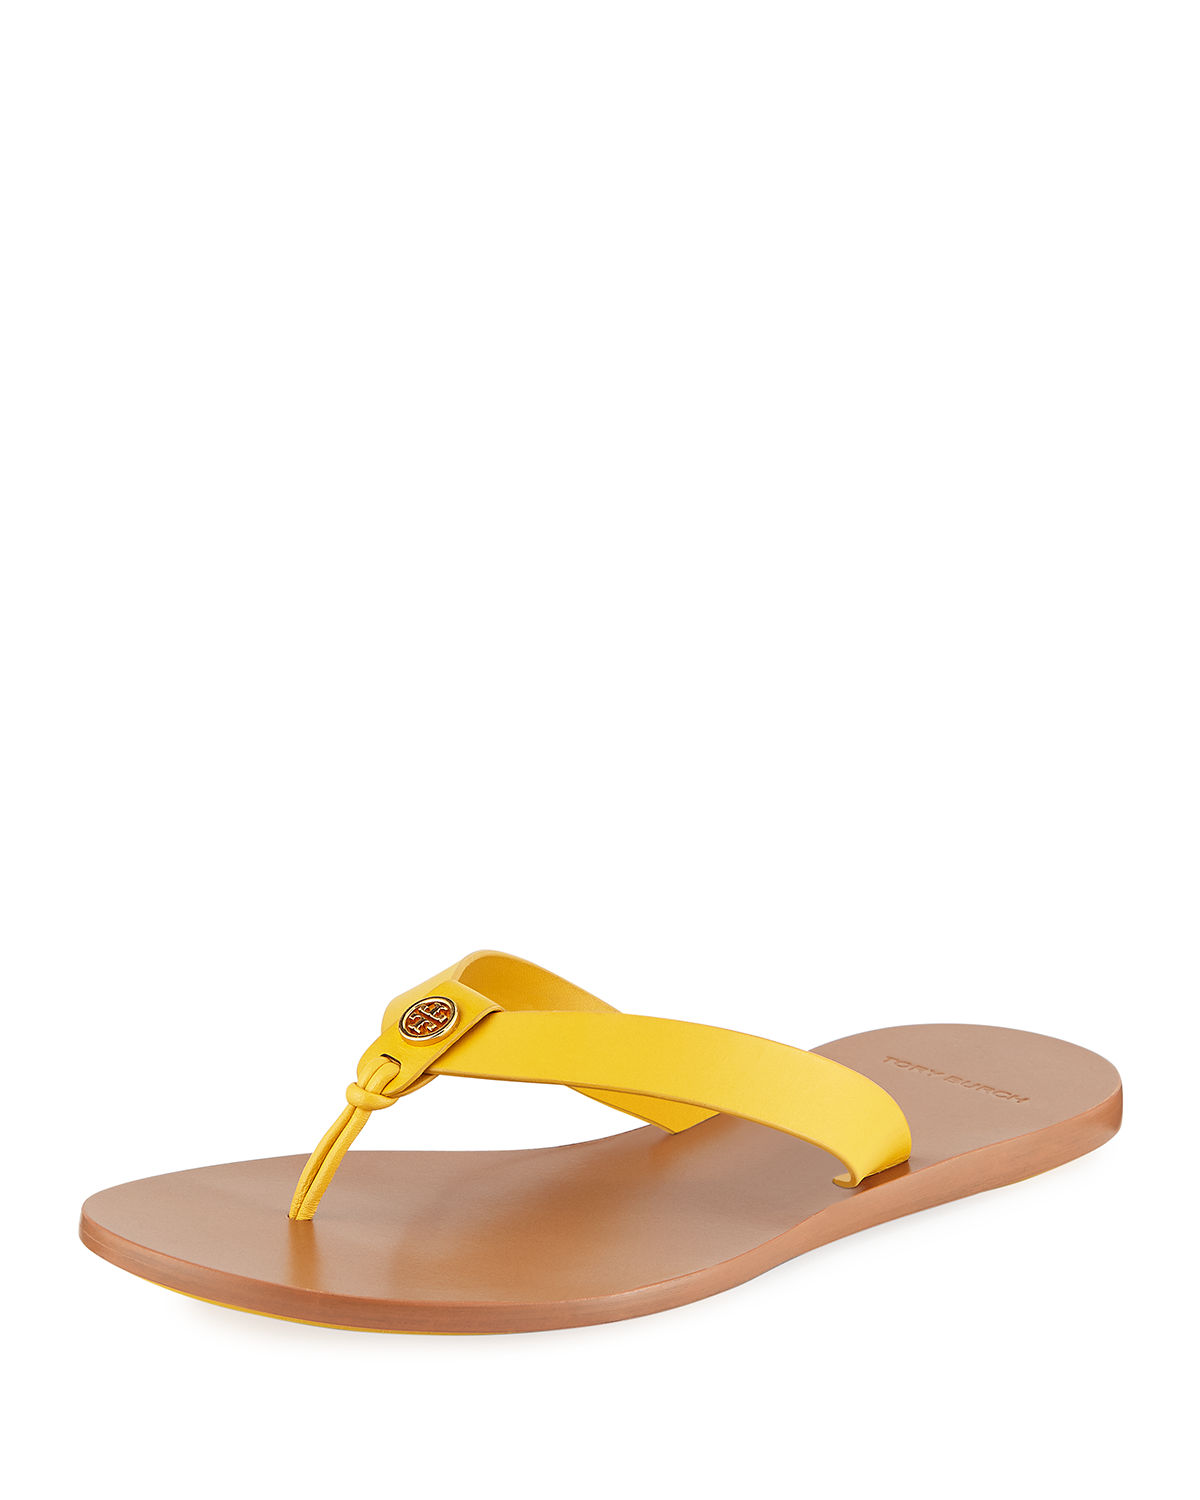 2c1598162 Tory Burch Manon Leather Thong Sandals